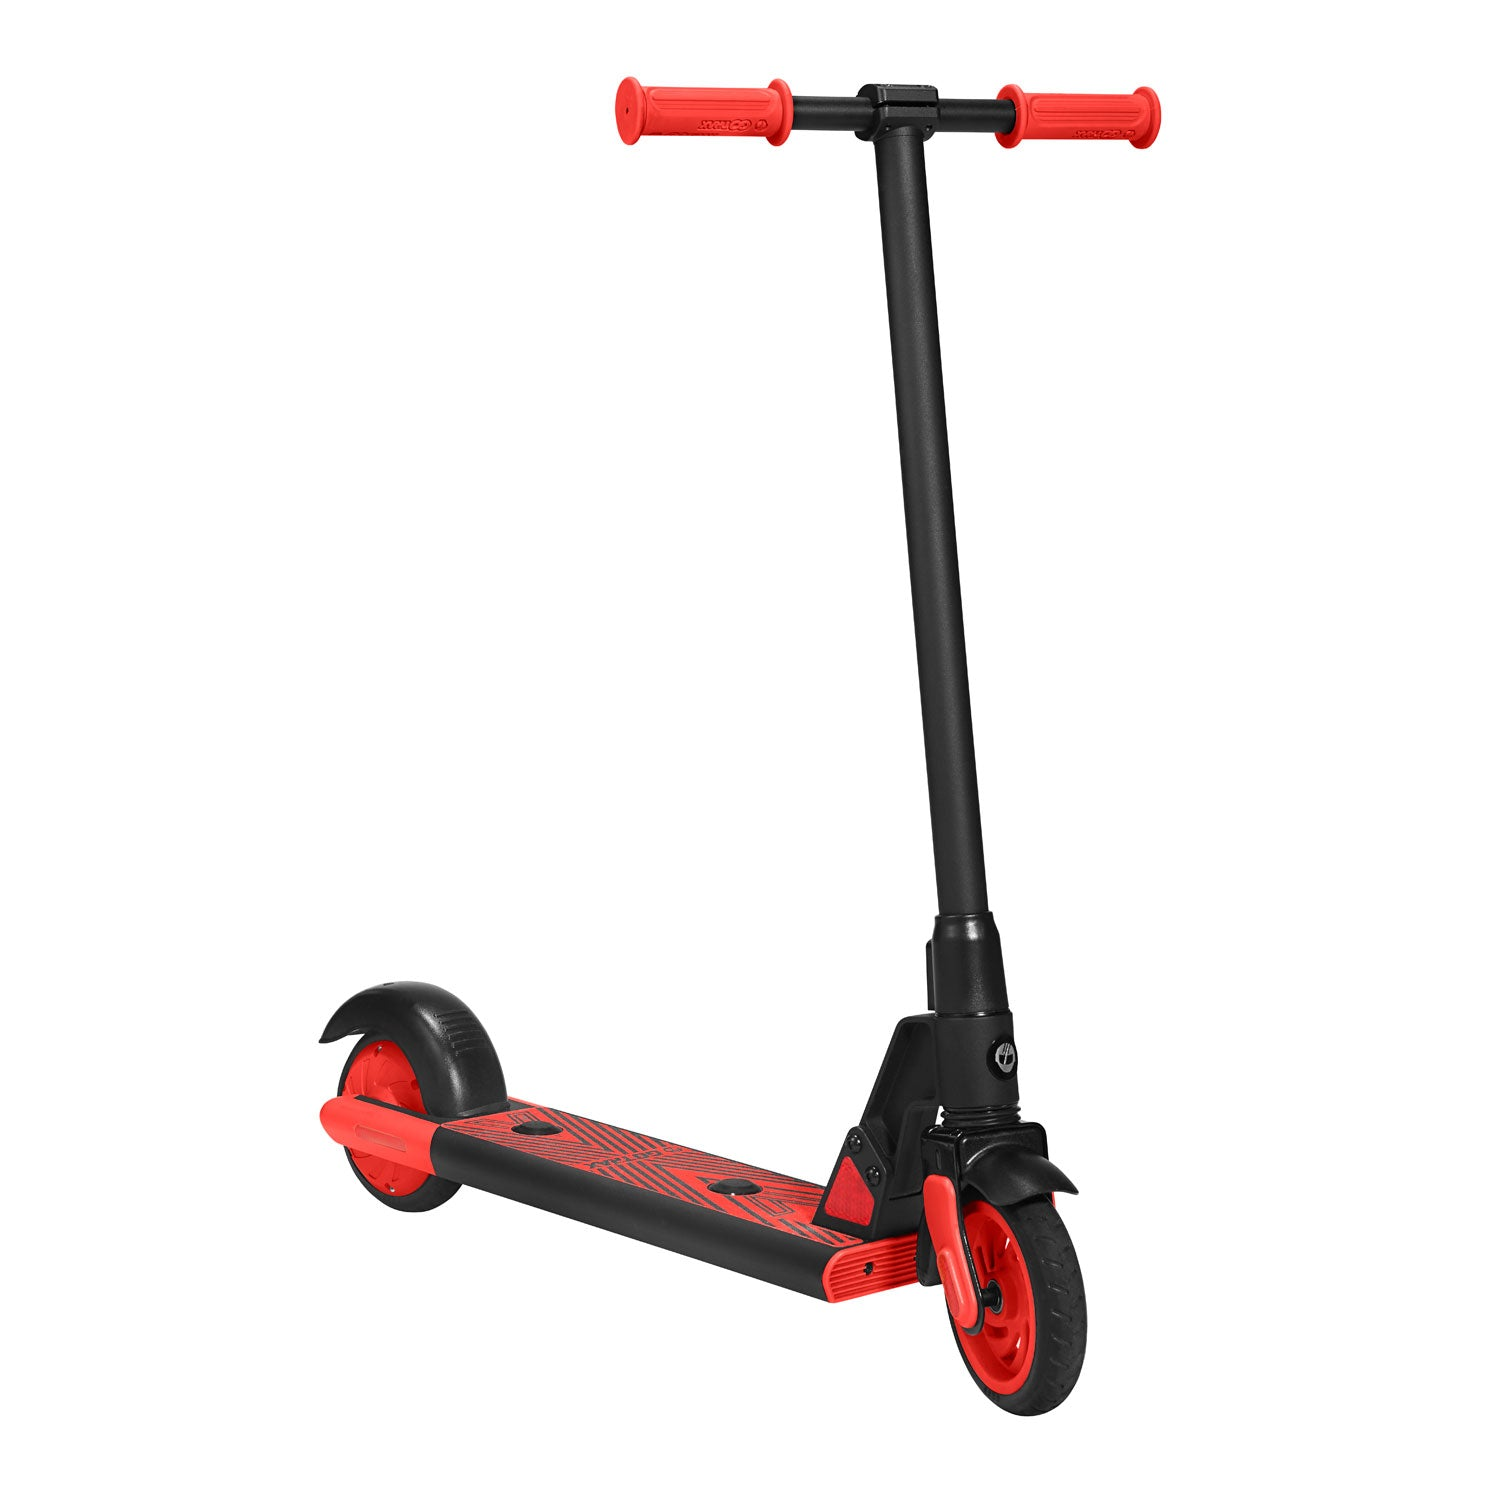 Red gks electric scooter for kids angle image